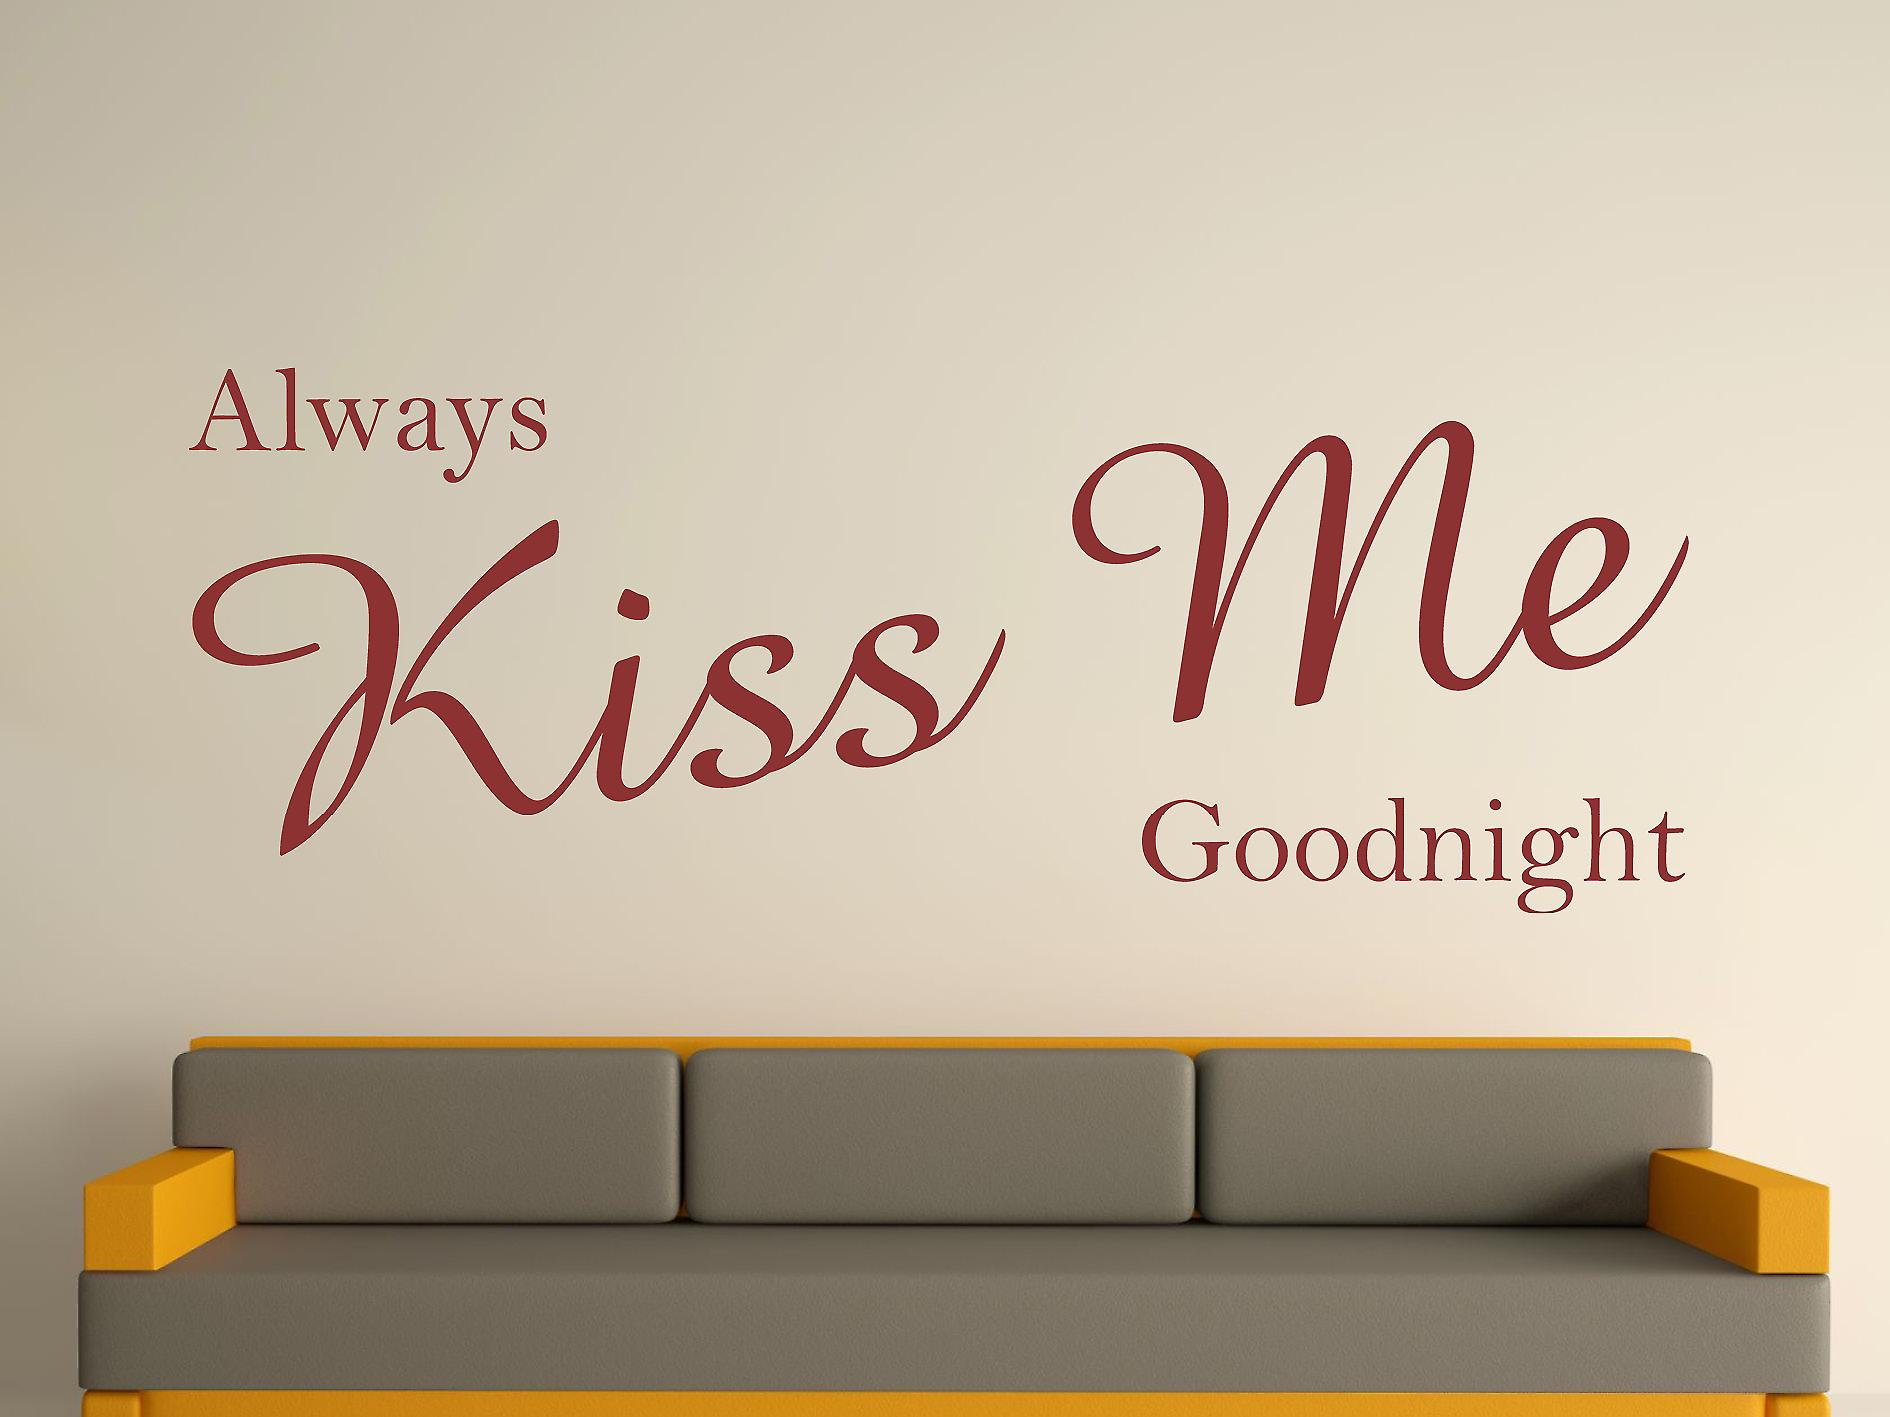 Always Kiss Me Goodnight Wall Art Sticker - Burgundy